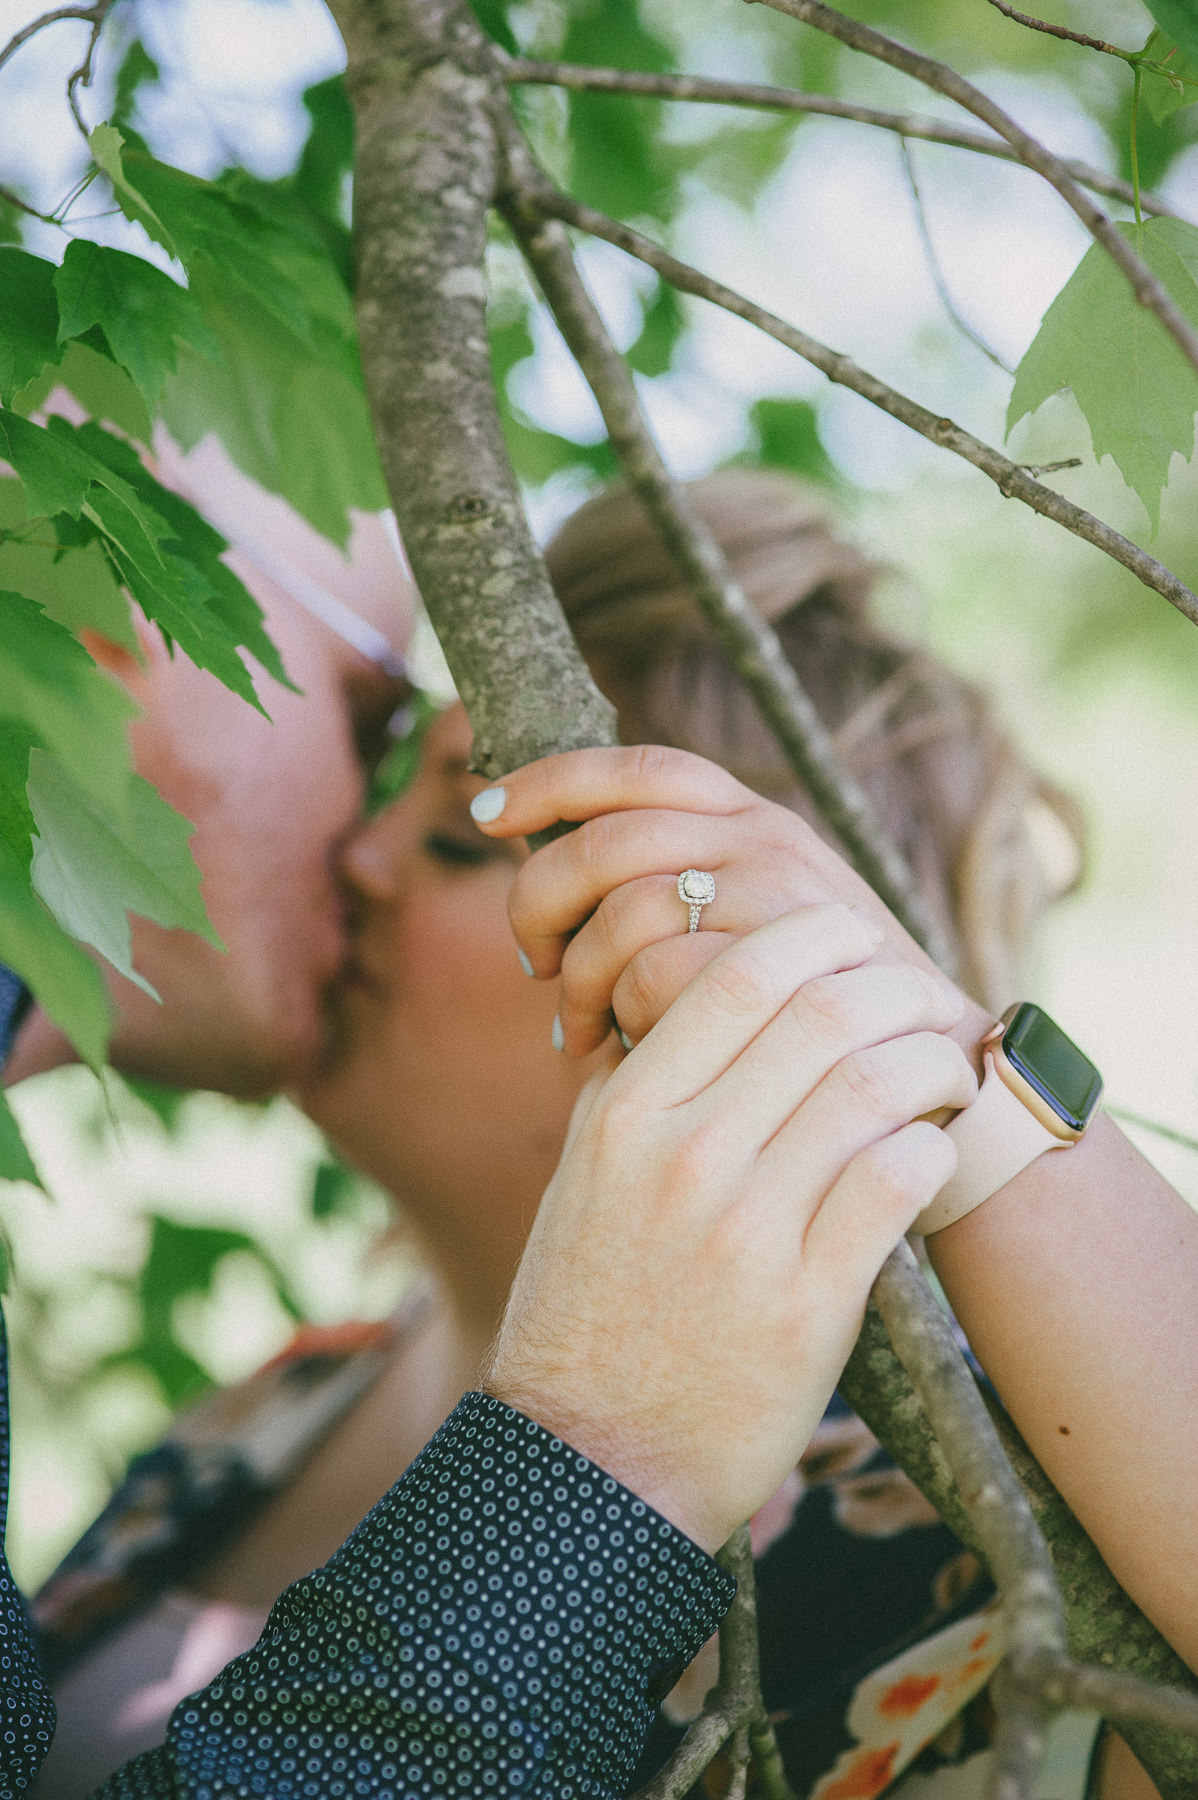 breighton-and-basette-photography-copyrighted-image-blog-jennifer-and-sean-engagement-021.jpg